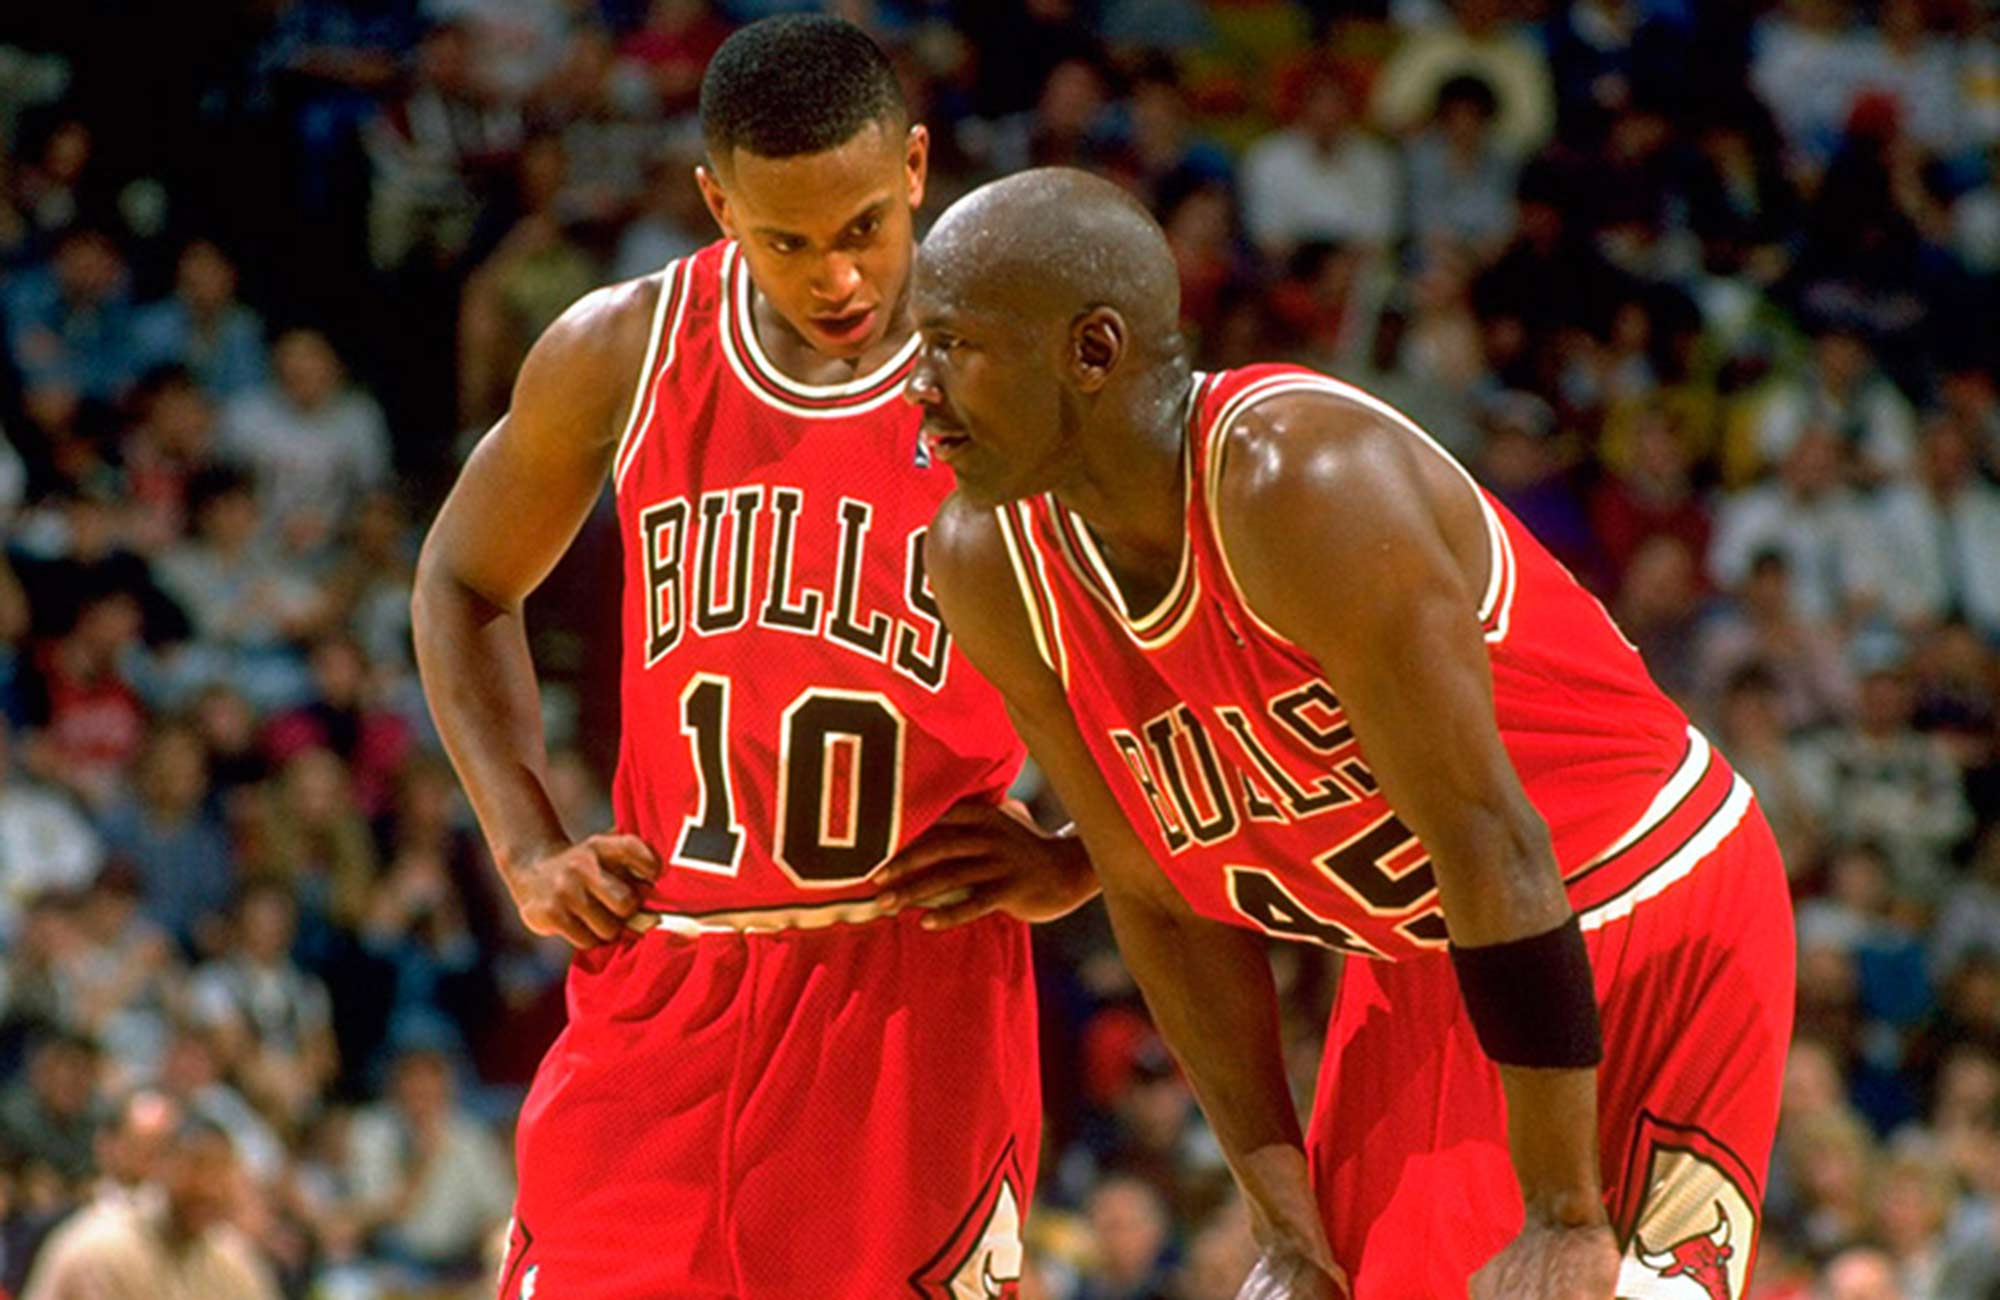 BJ Armstrong and Michael Jordan